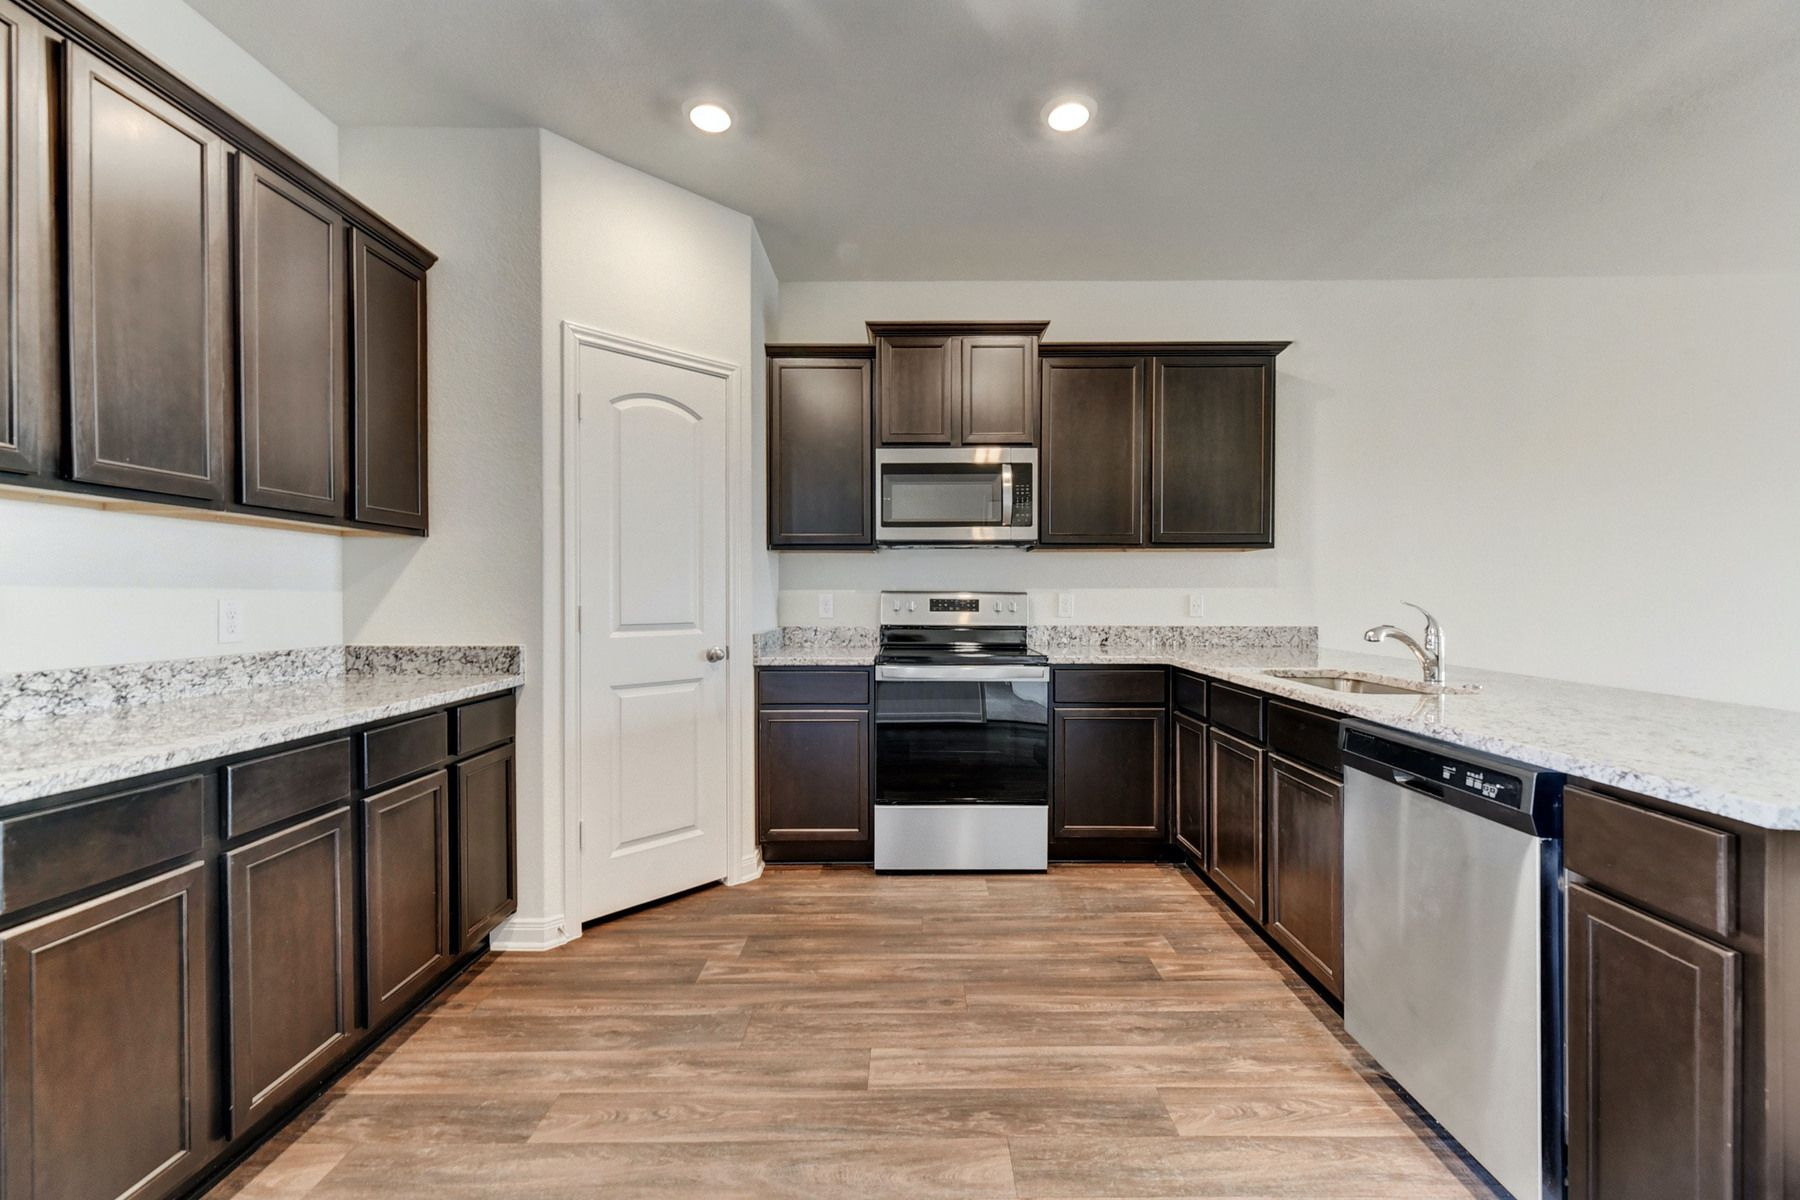 The Travis by LGI Homes:Enjoy stunning granite countertops and designer wood cabinetry in this kitchen.